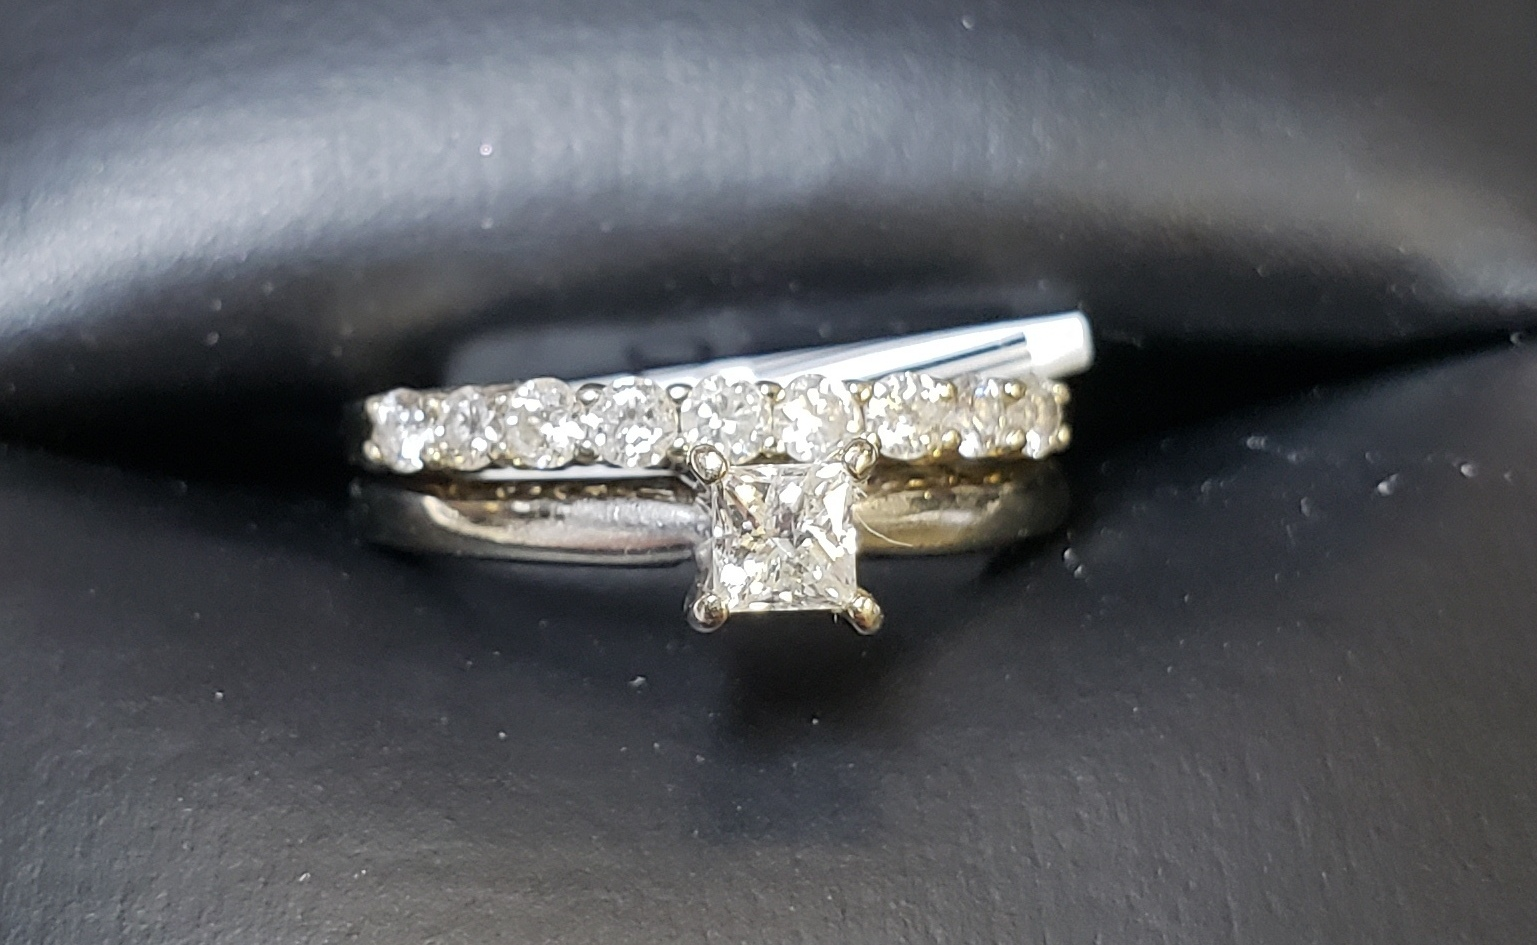 10KT - WHITE GOLD - SIZE 4 - APPROXIMATELY 1/4 CTW PRINCESS CUT WEDDING SET